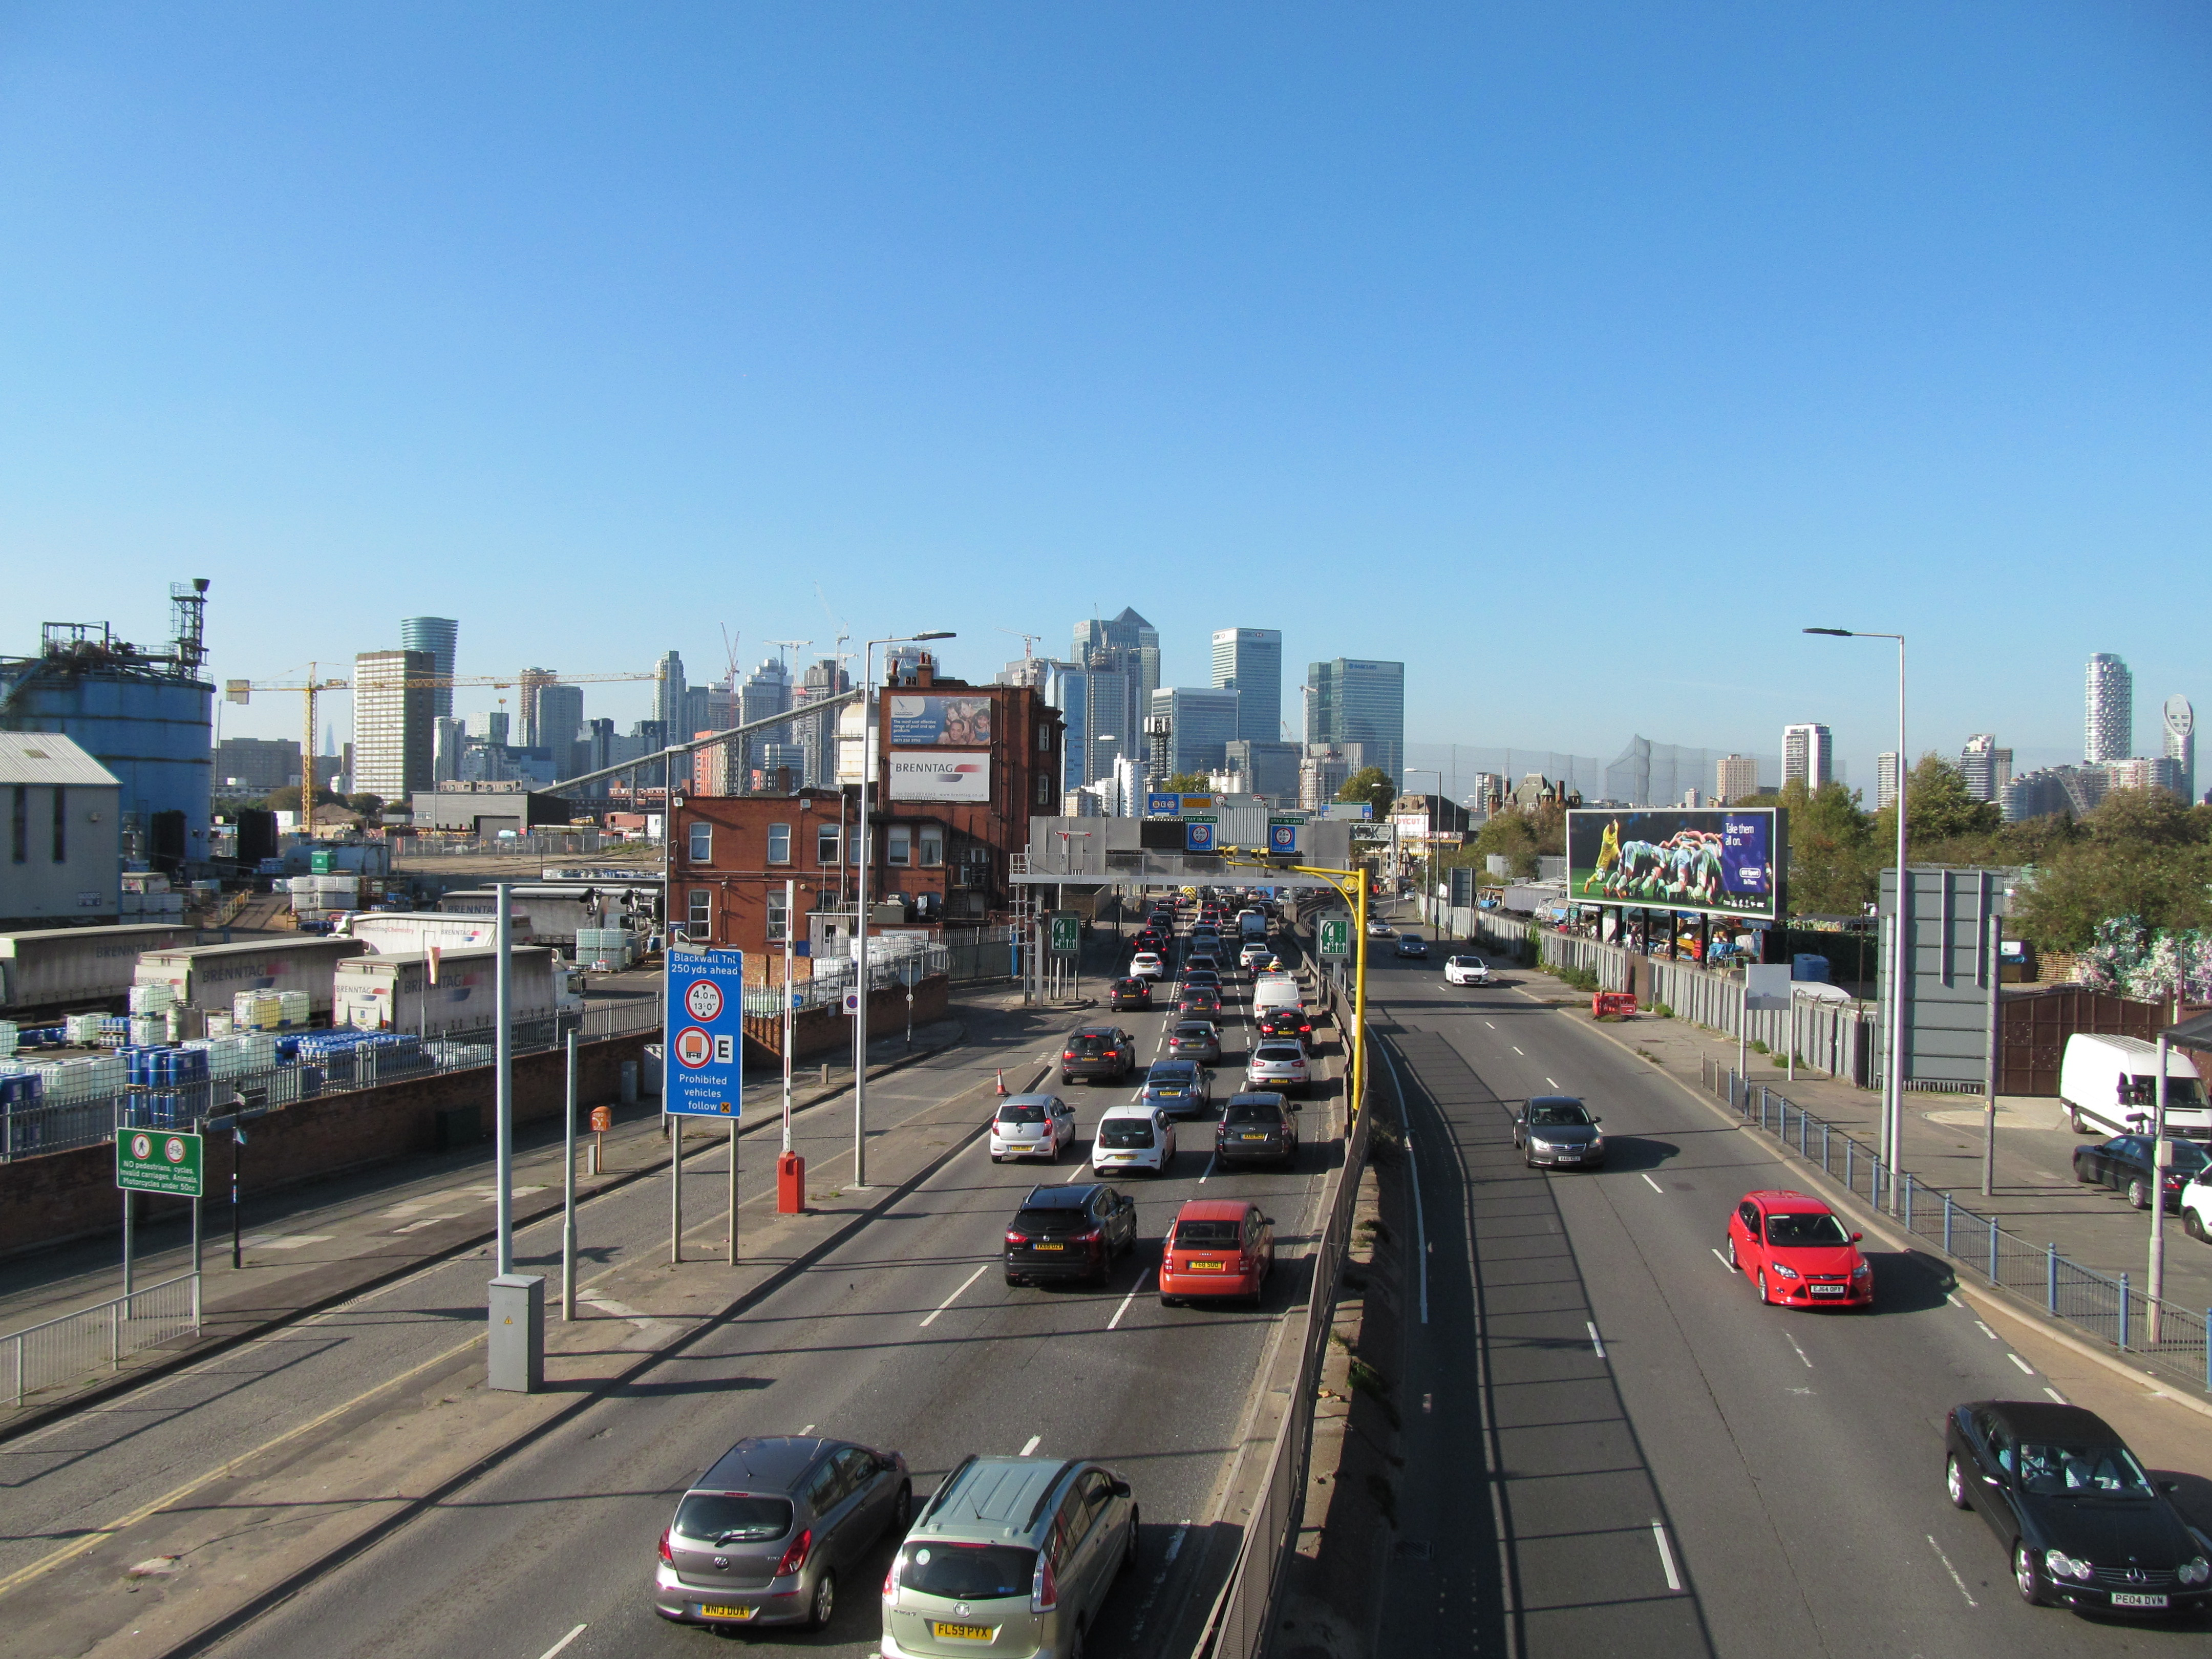 Dartford tunnel closure today leading to very busy Blackwall crossing